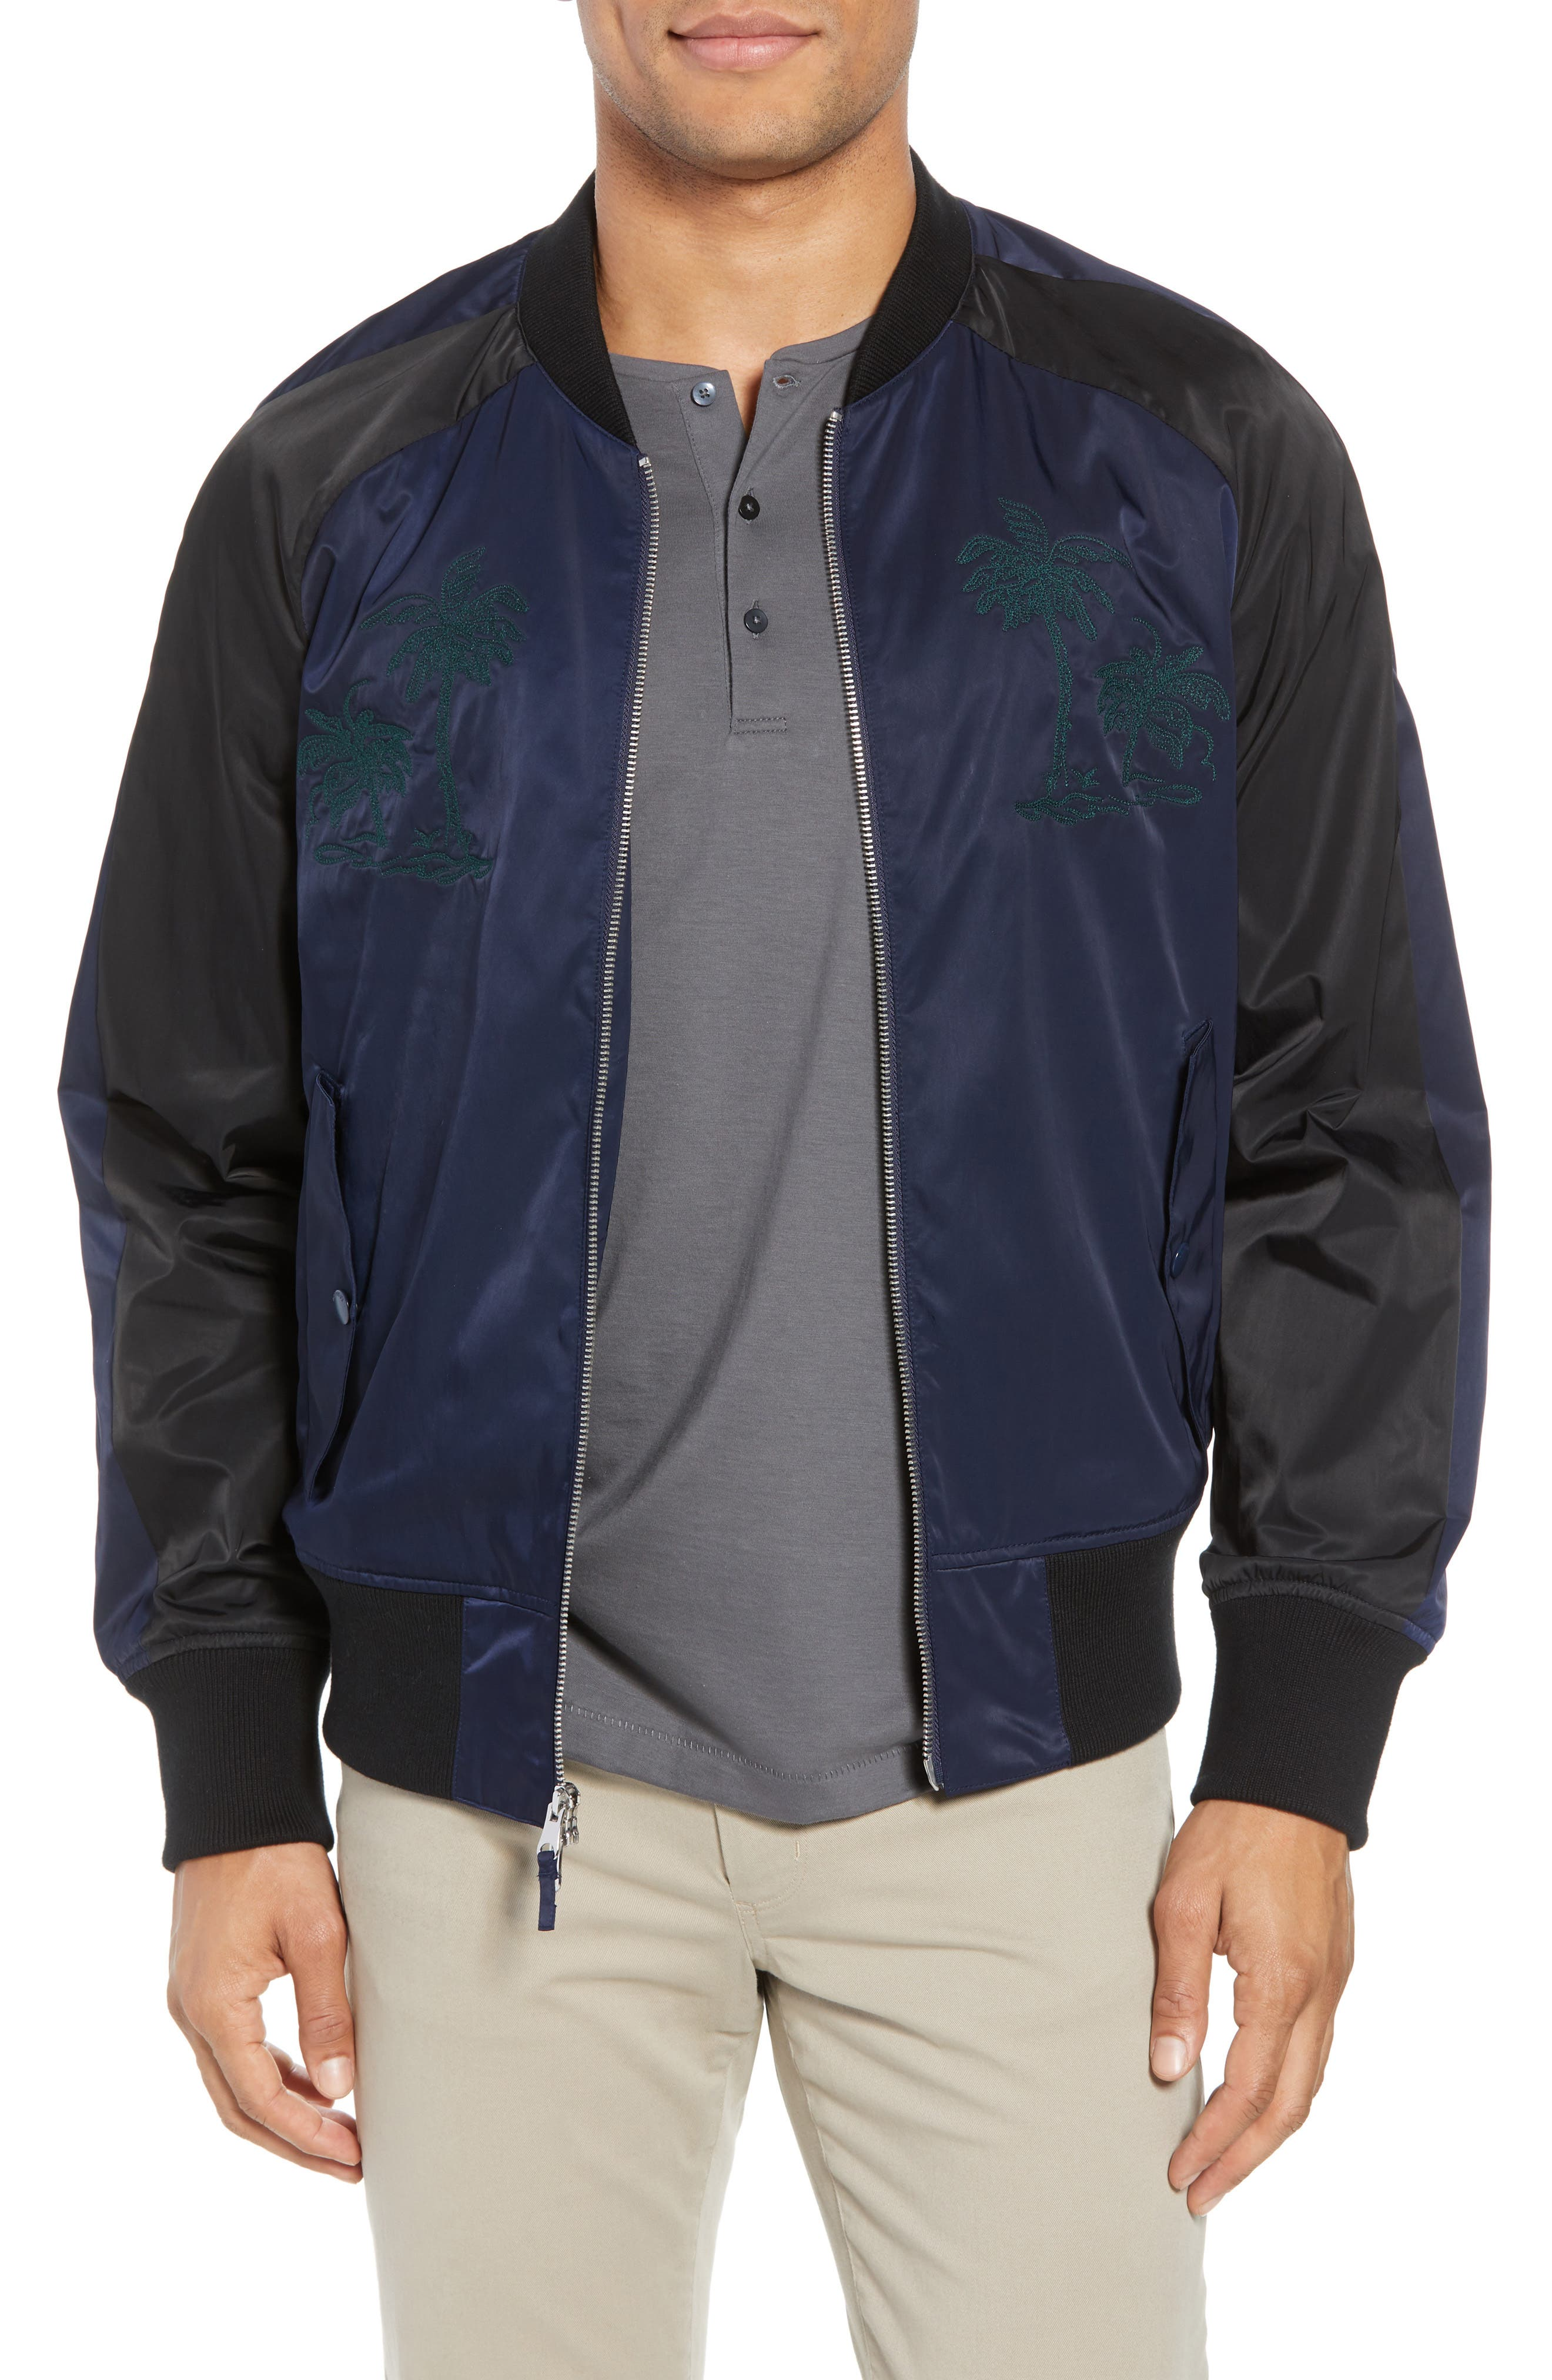 Souvenir Bomber Jacket,                         Main,                         color, Embroidered Palm - Navy